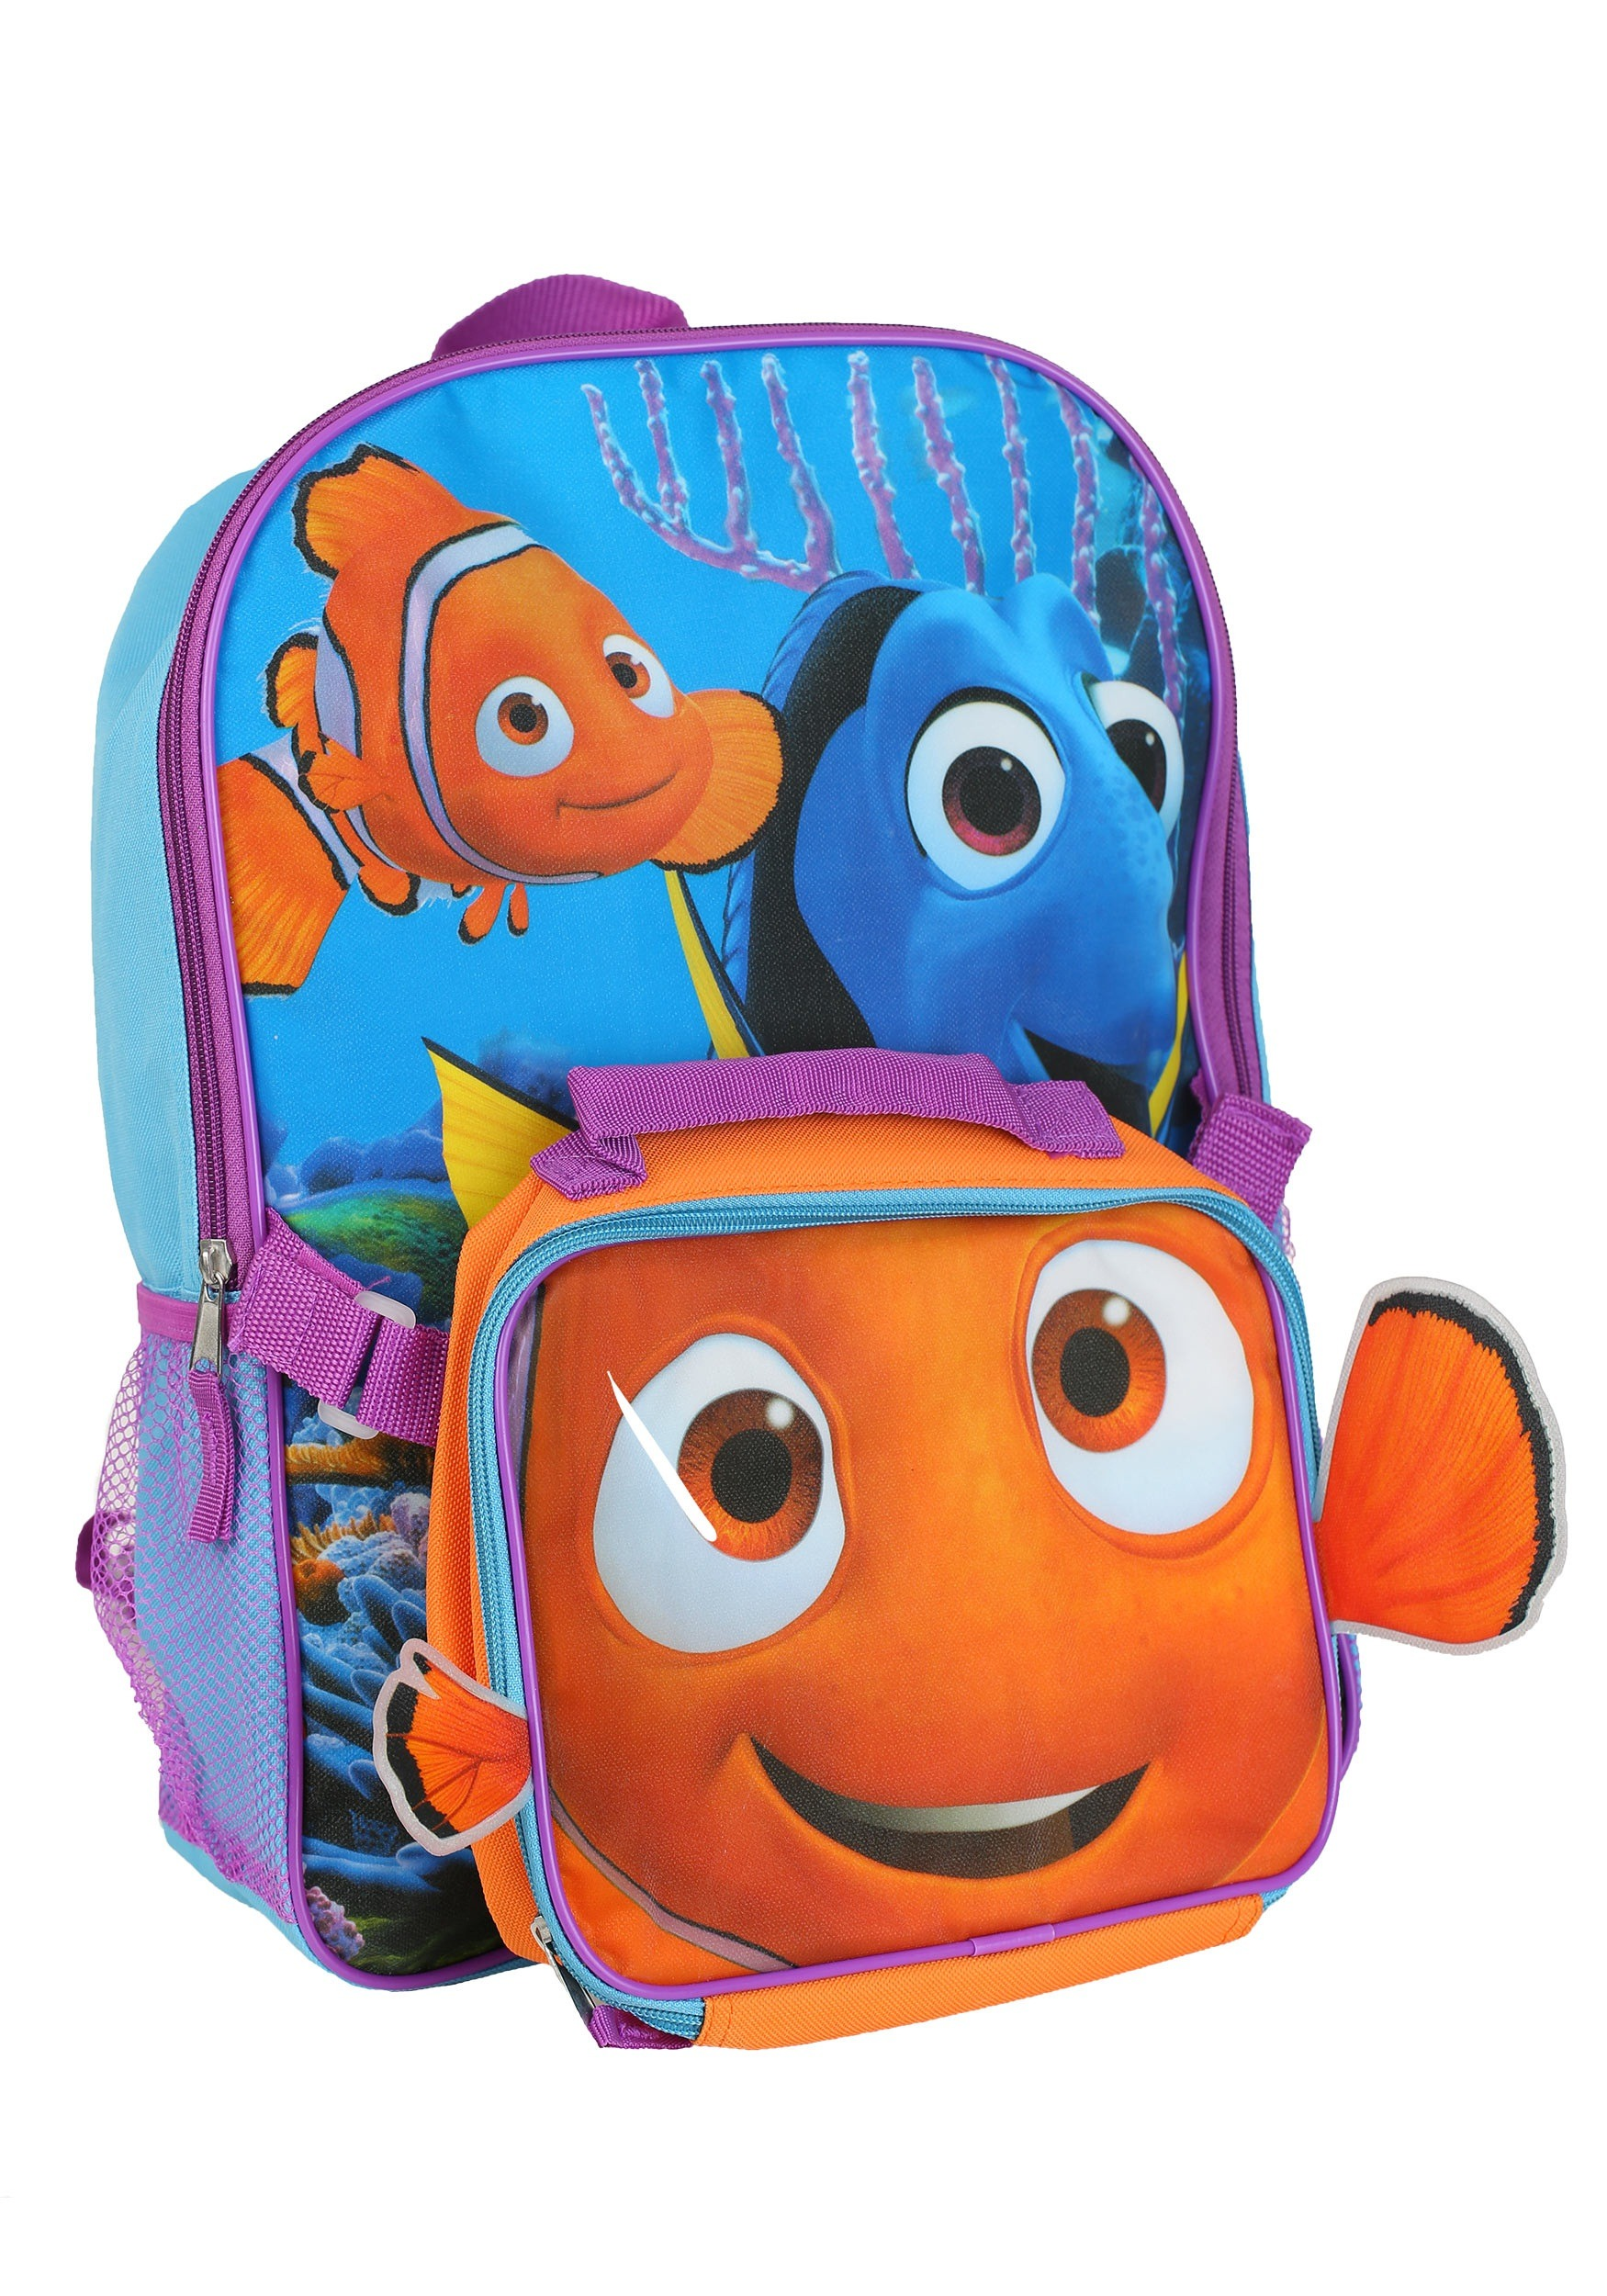 70675339906 finding-dory-backpack-w-lunch-kit.jpg